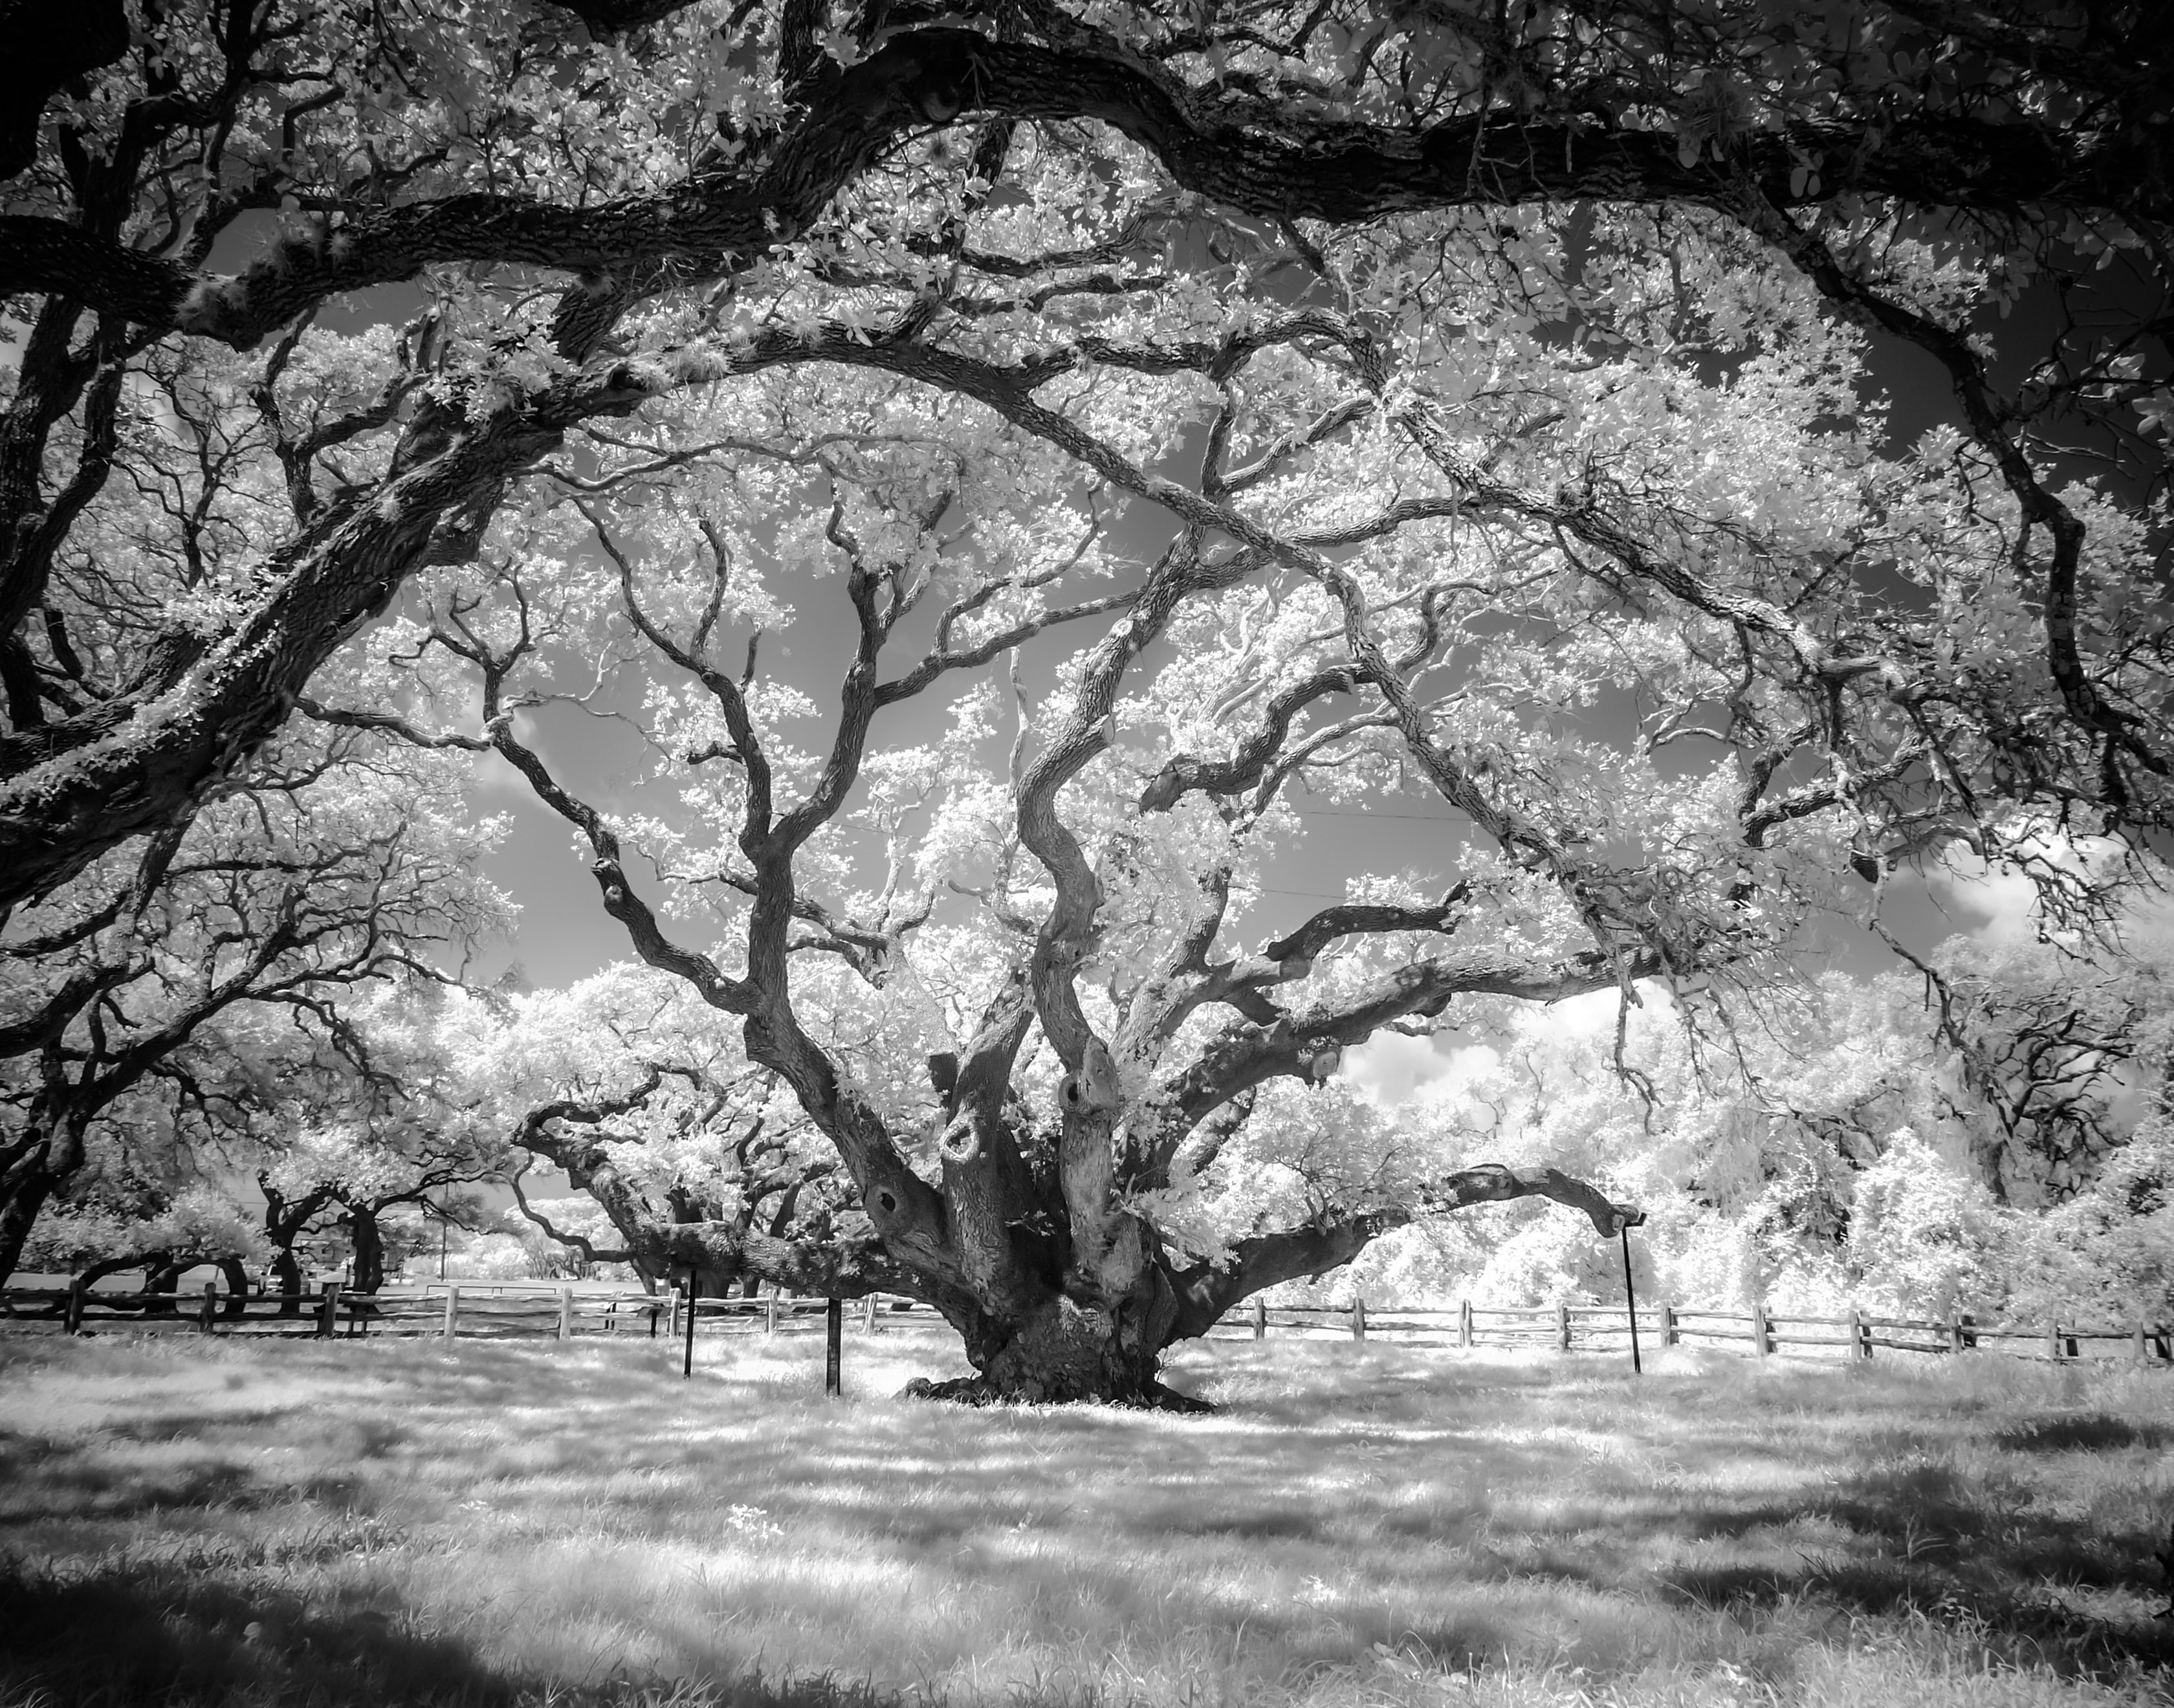 The Big Tree in Infrared